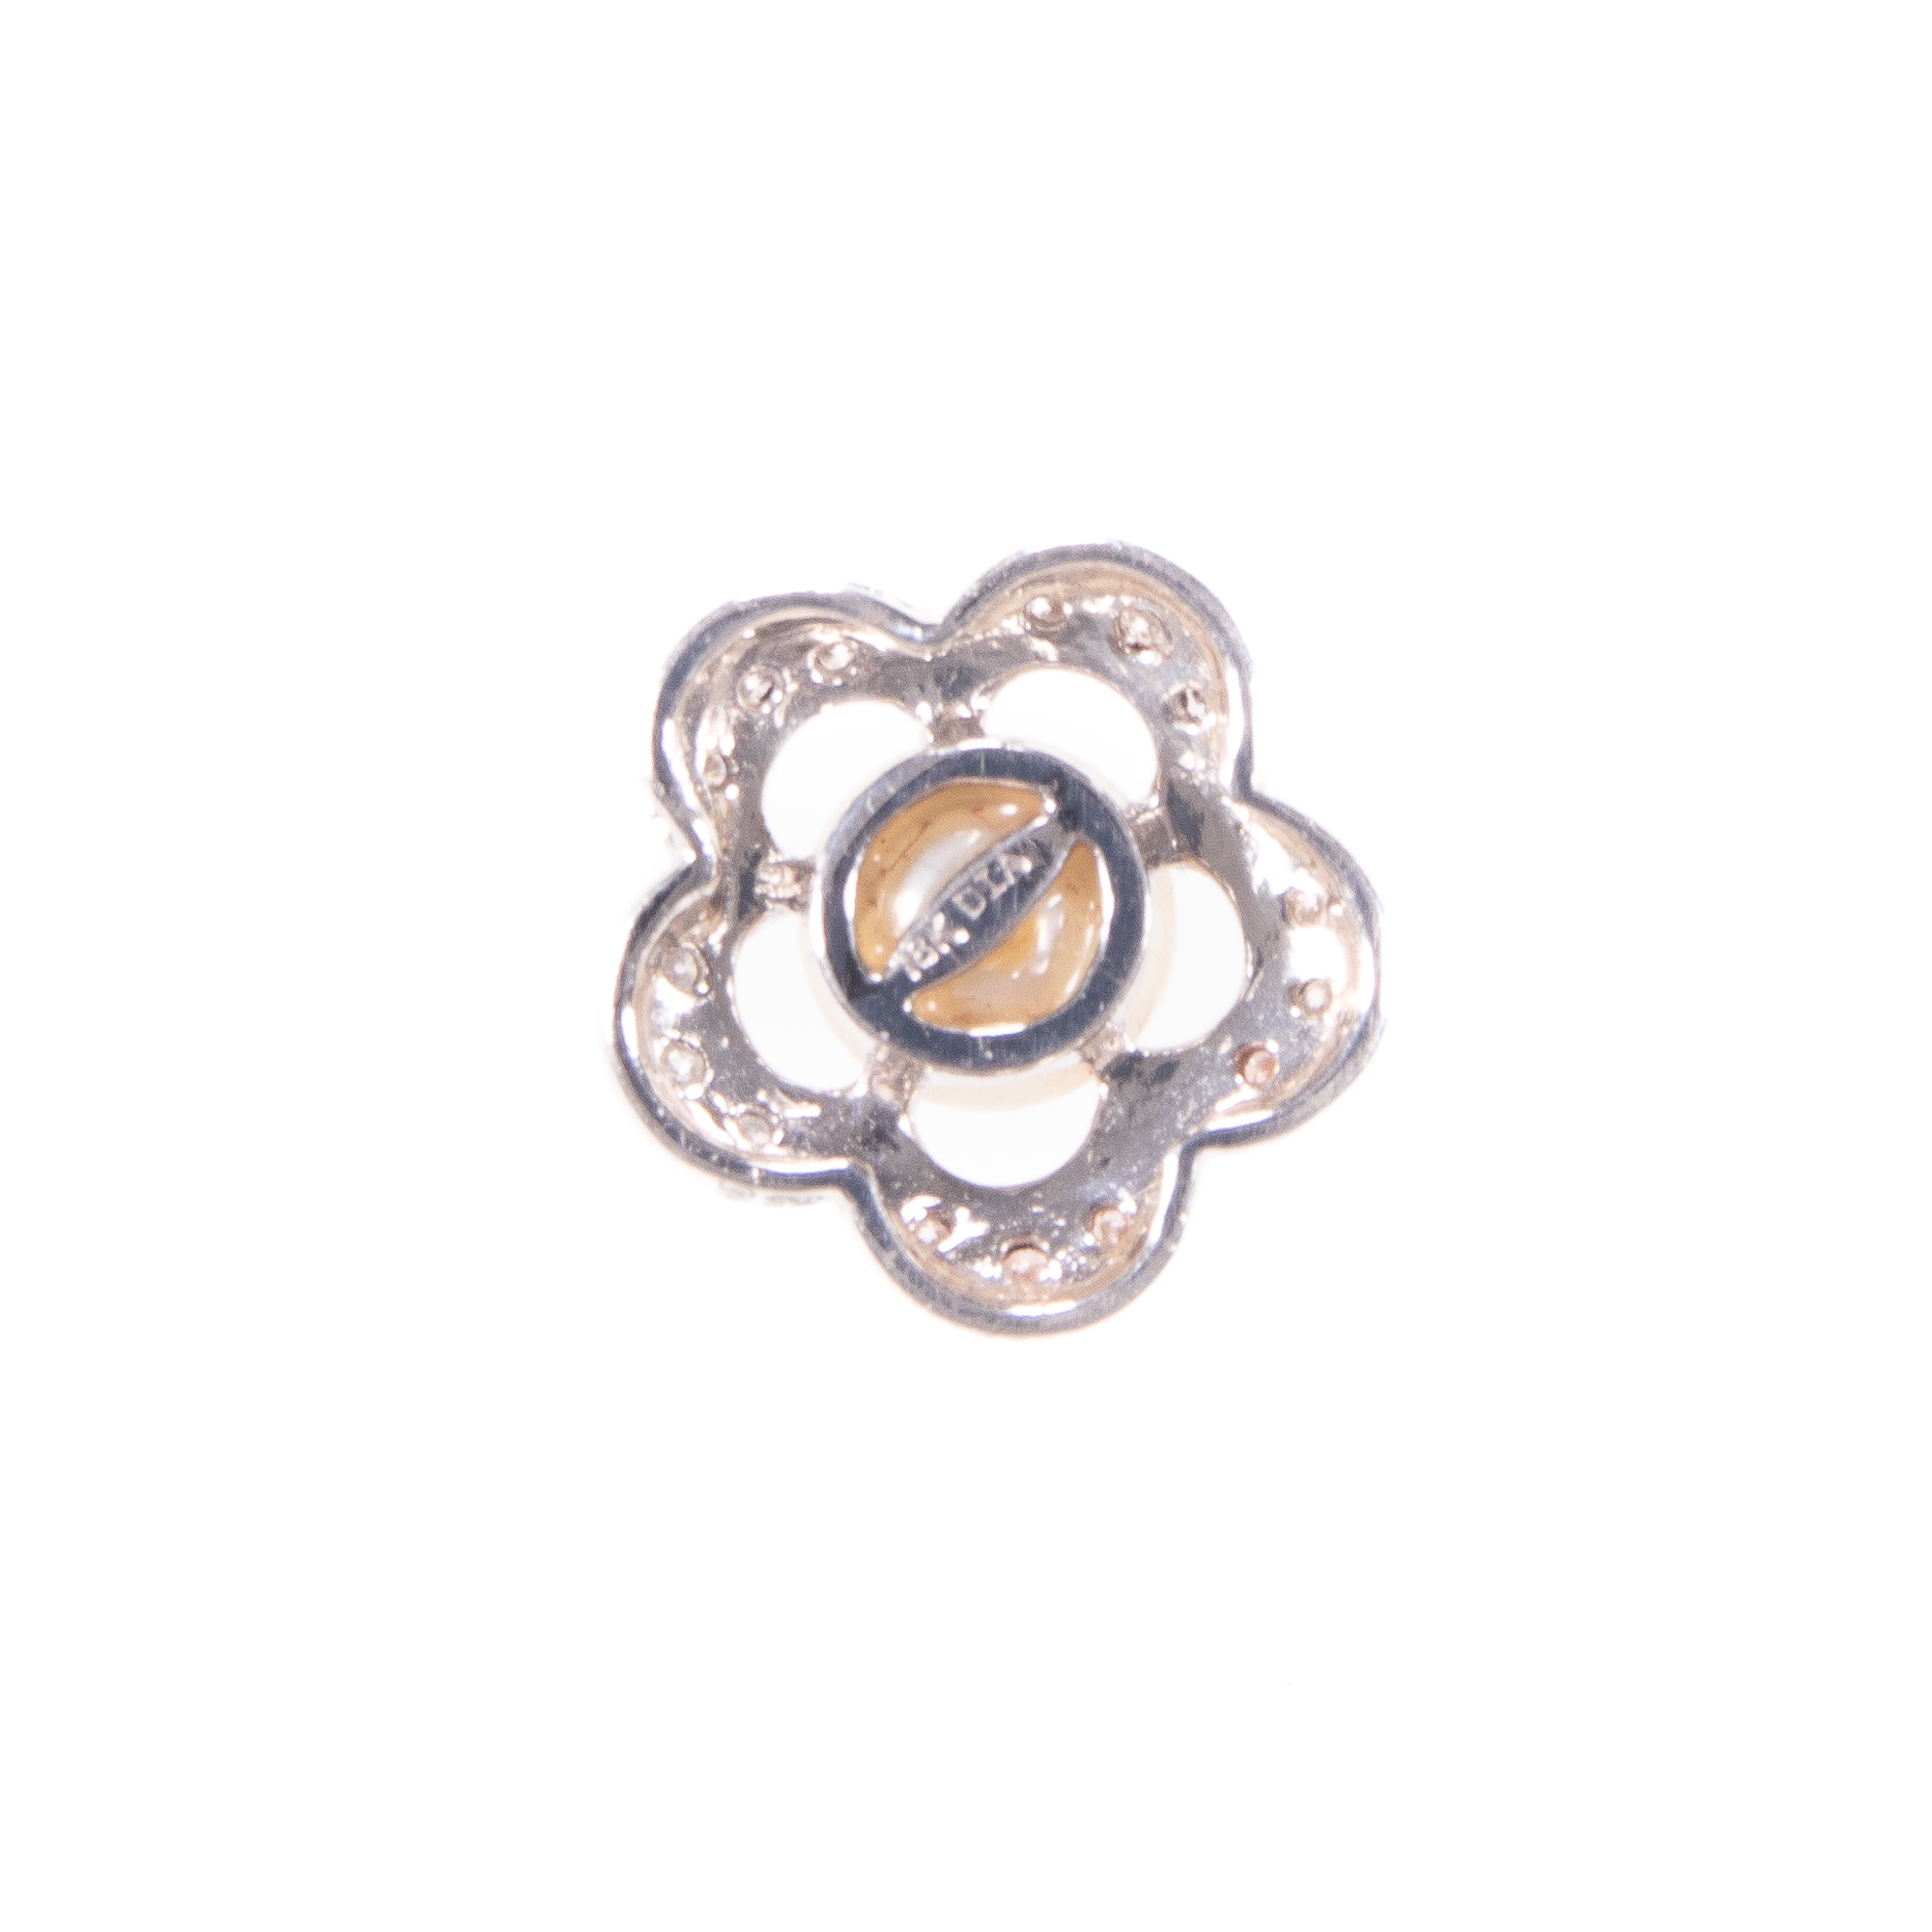 18ct White Gold Diamond & Pearl Floral Pendant - Image 6 of 6